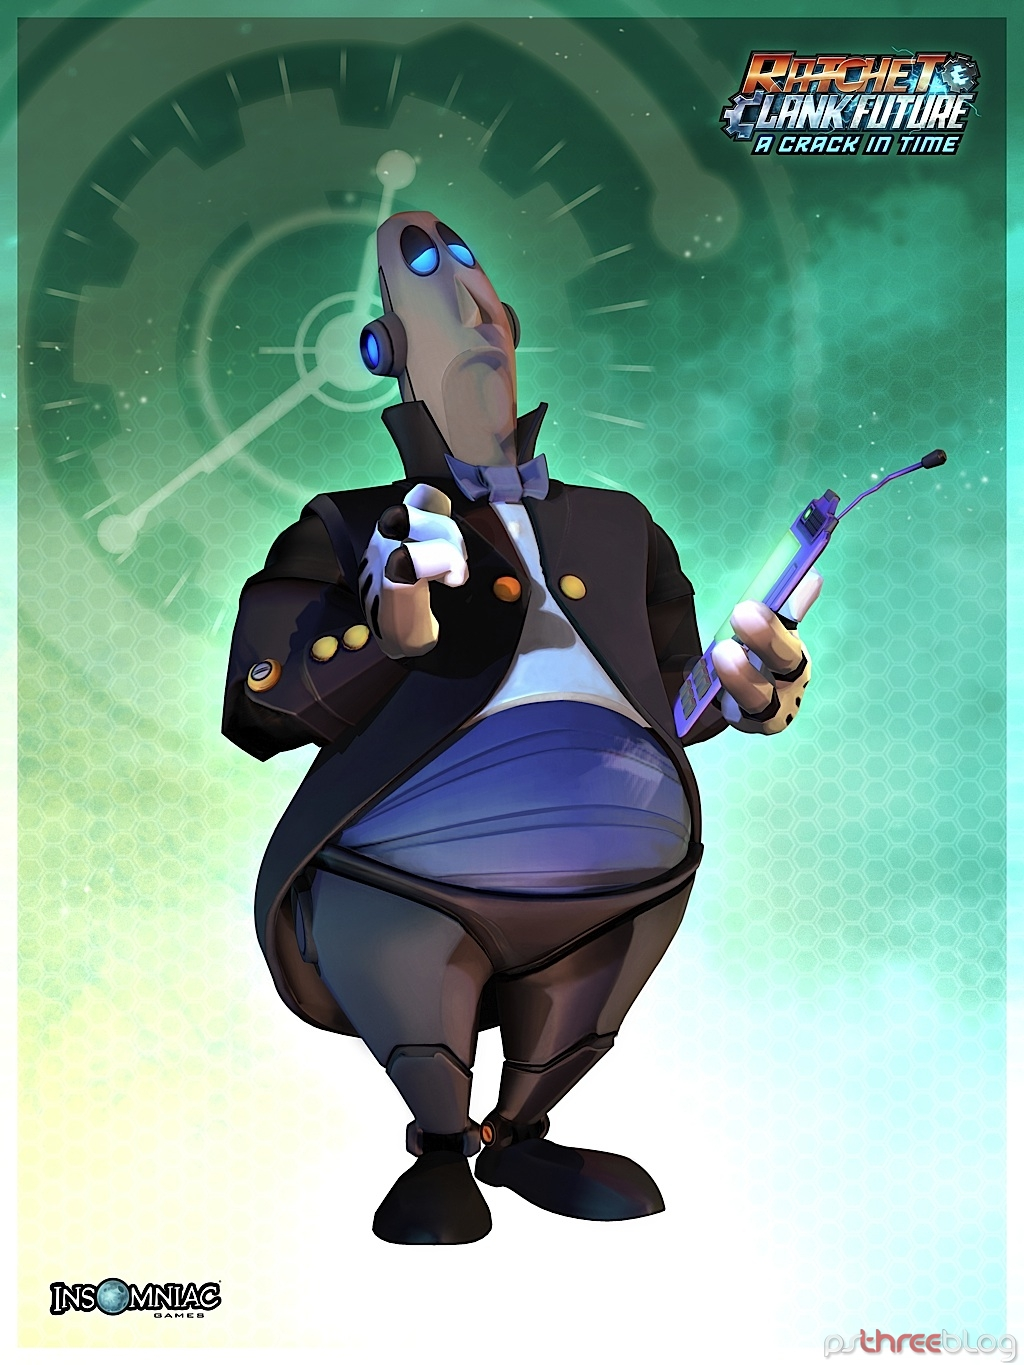 Lawrence (Ratchet & Clank)